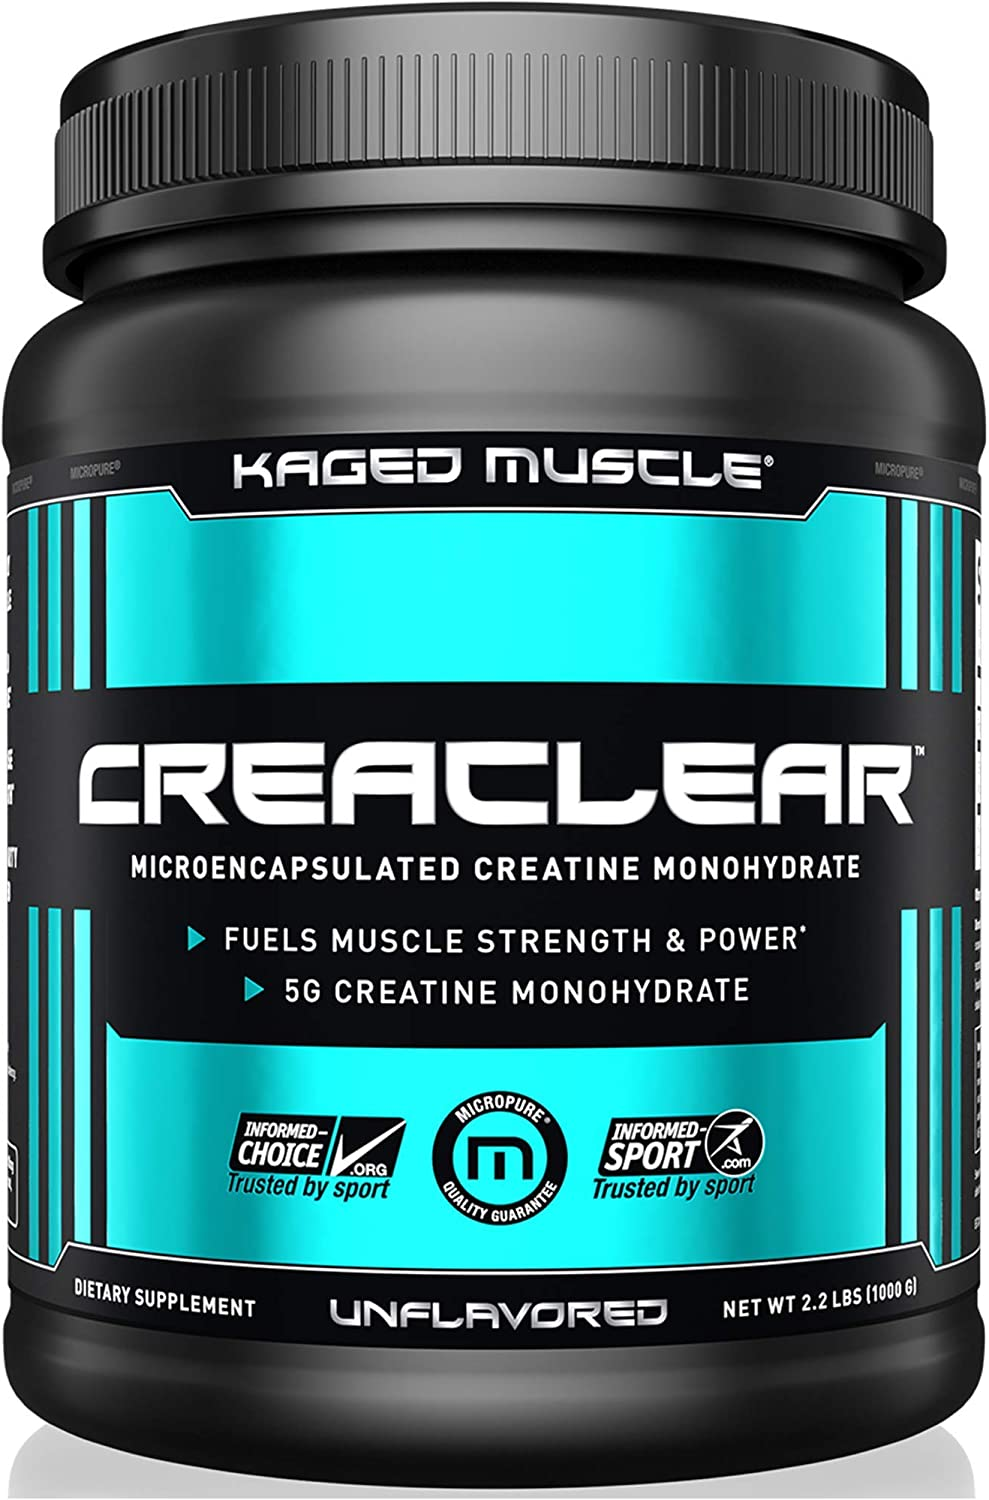 Kaged Muscle, CreaClear – Microencapsulated Creatine Monohydrate Powder, Improved Solubility – Mixes Clear, 1000g, Unflavored